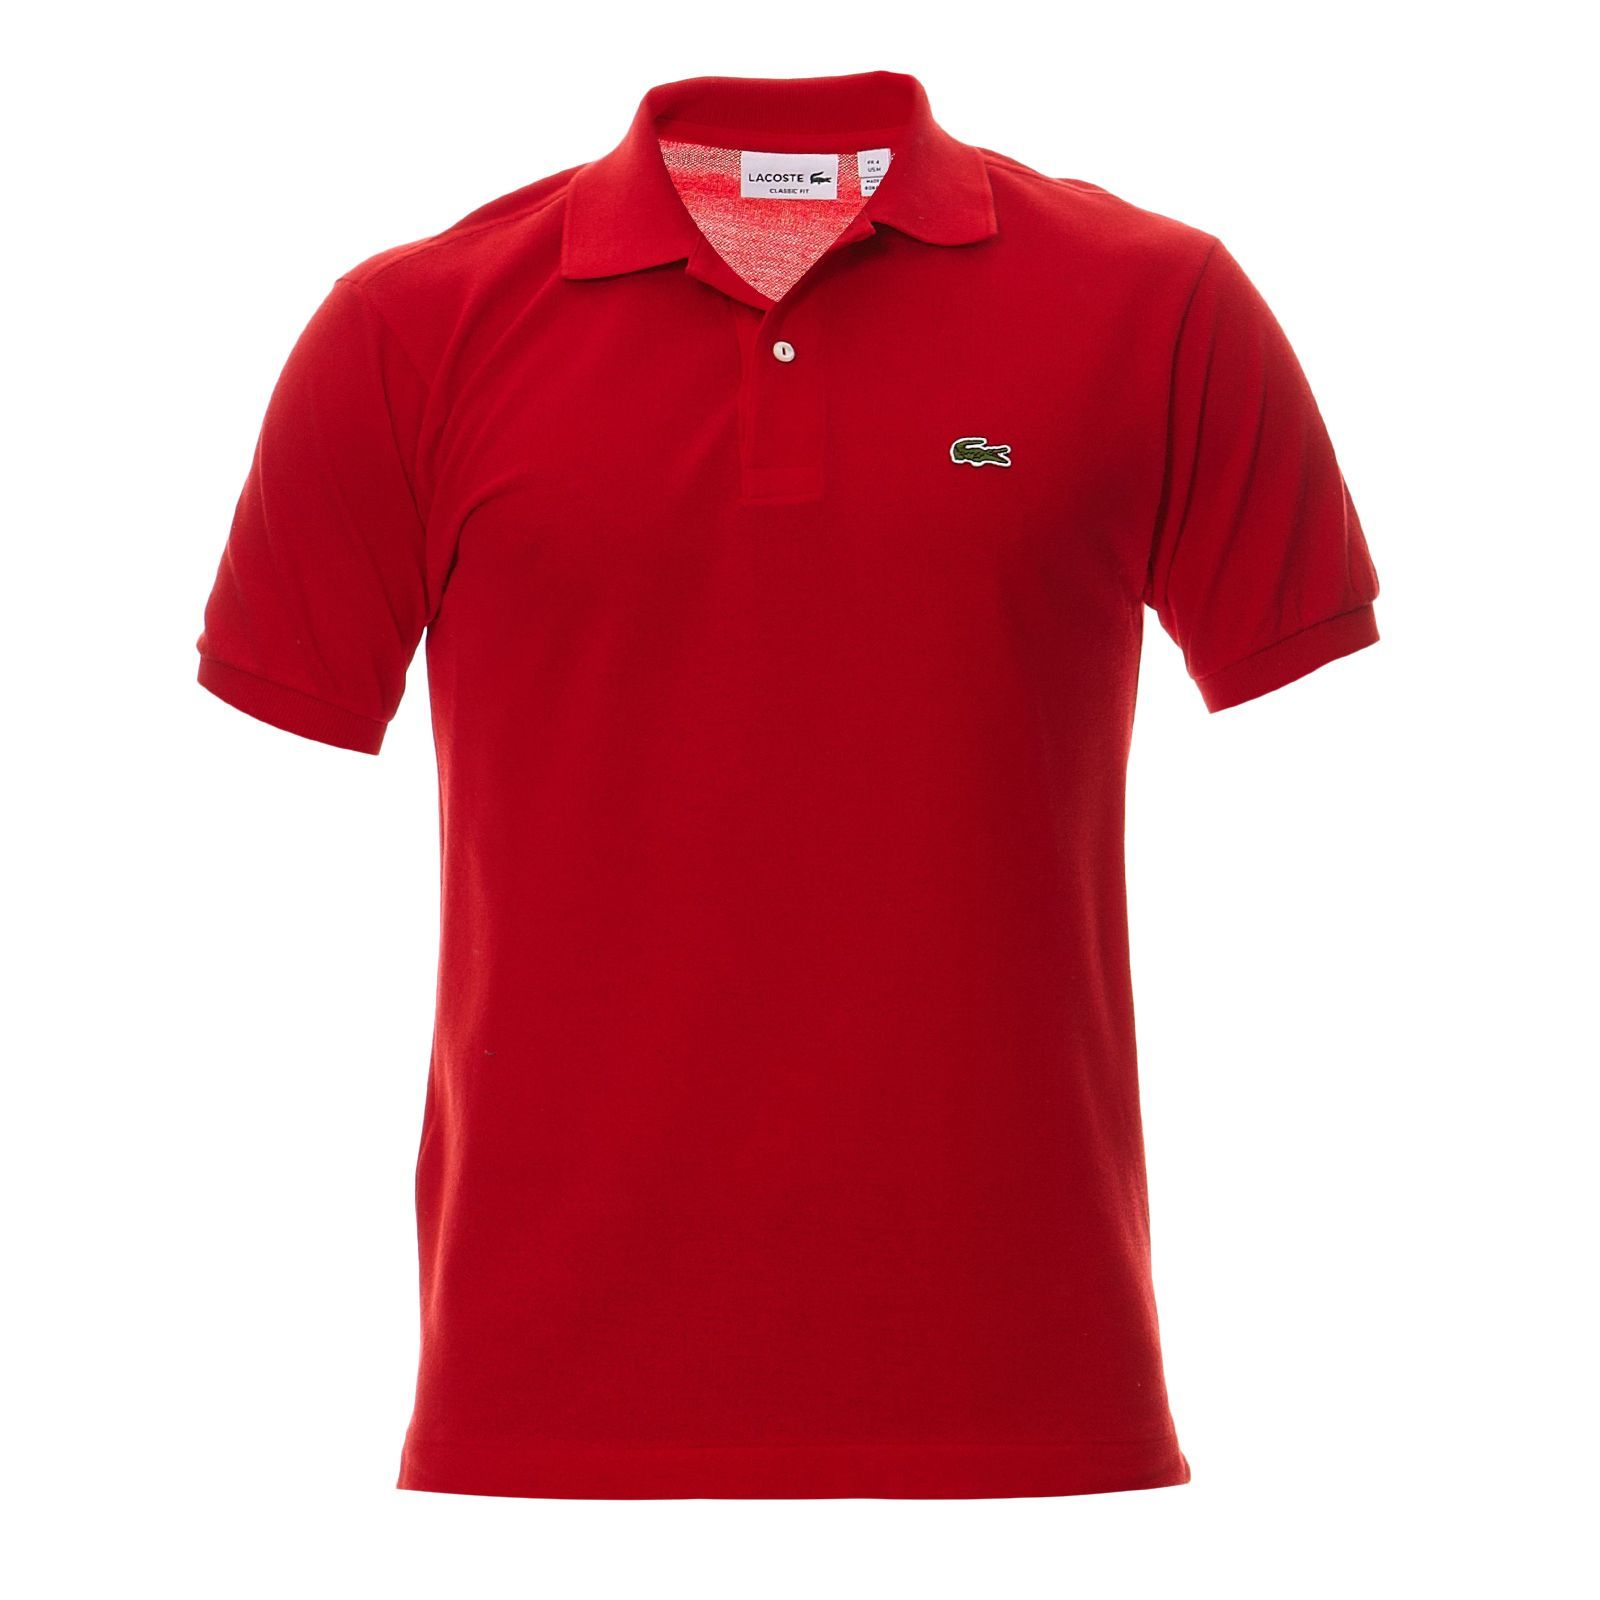 3cdaff73825 Lacoste L1212 - Polo - rouge